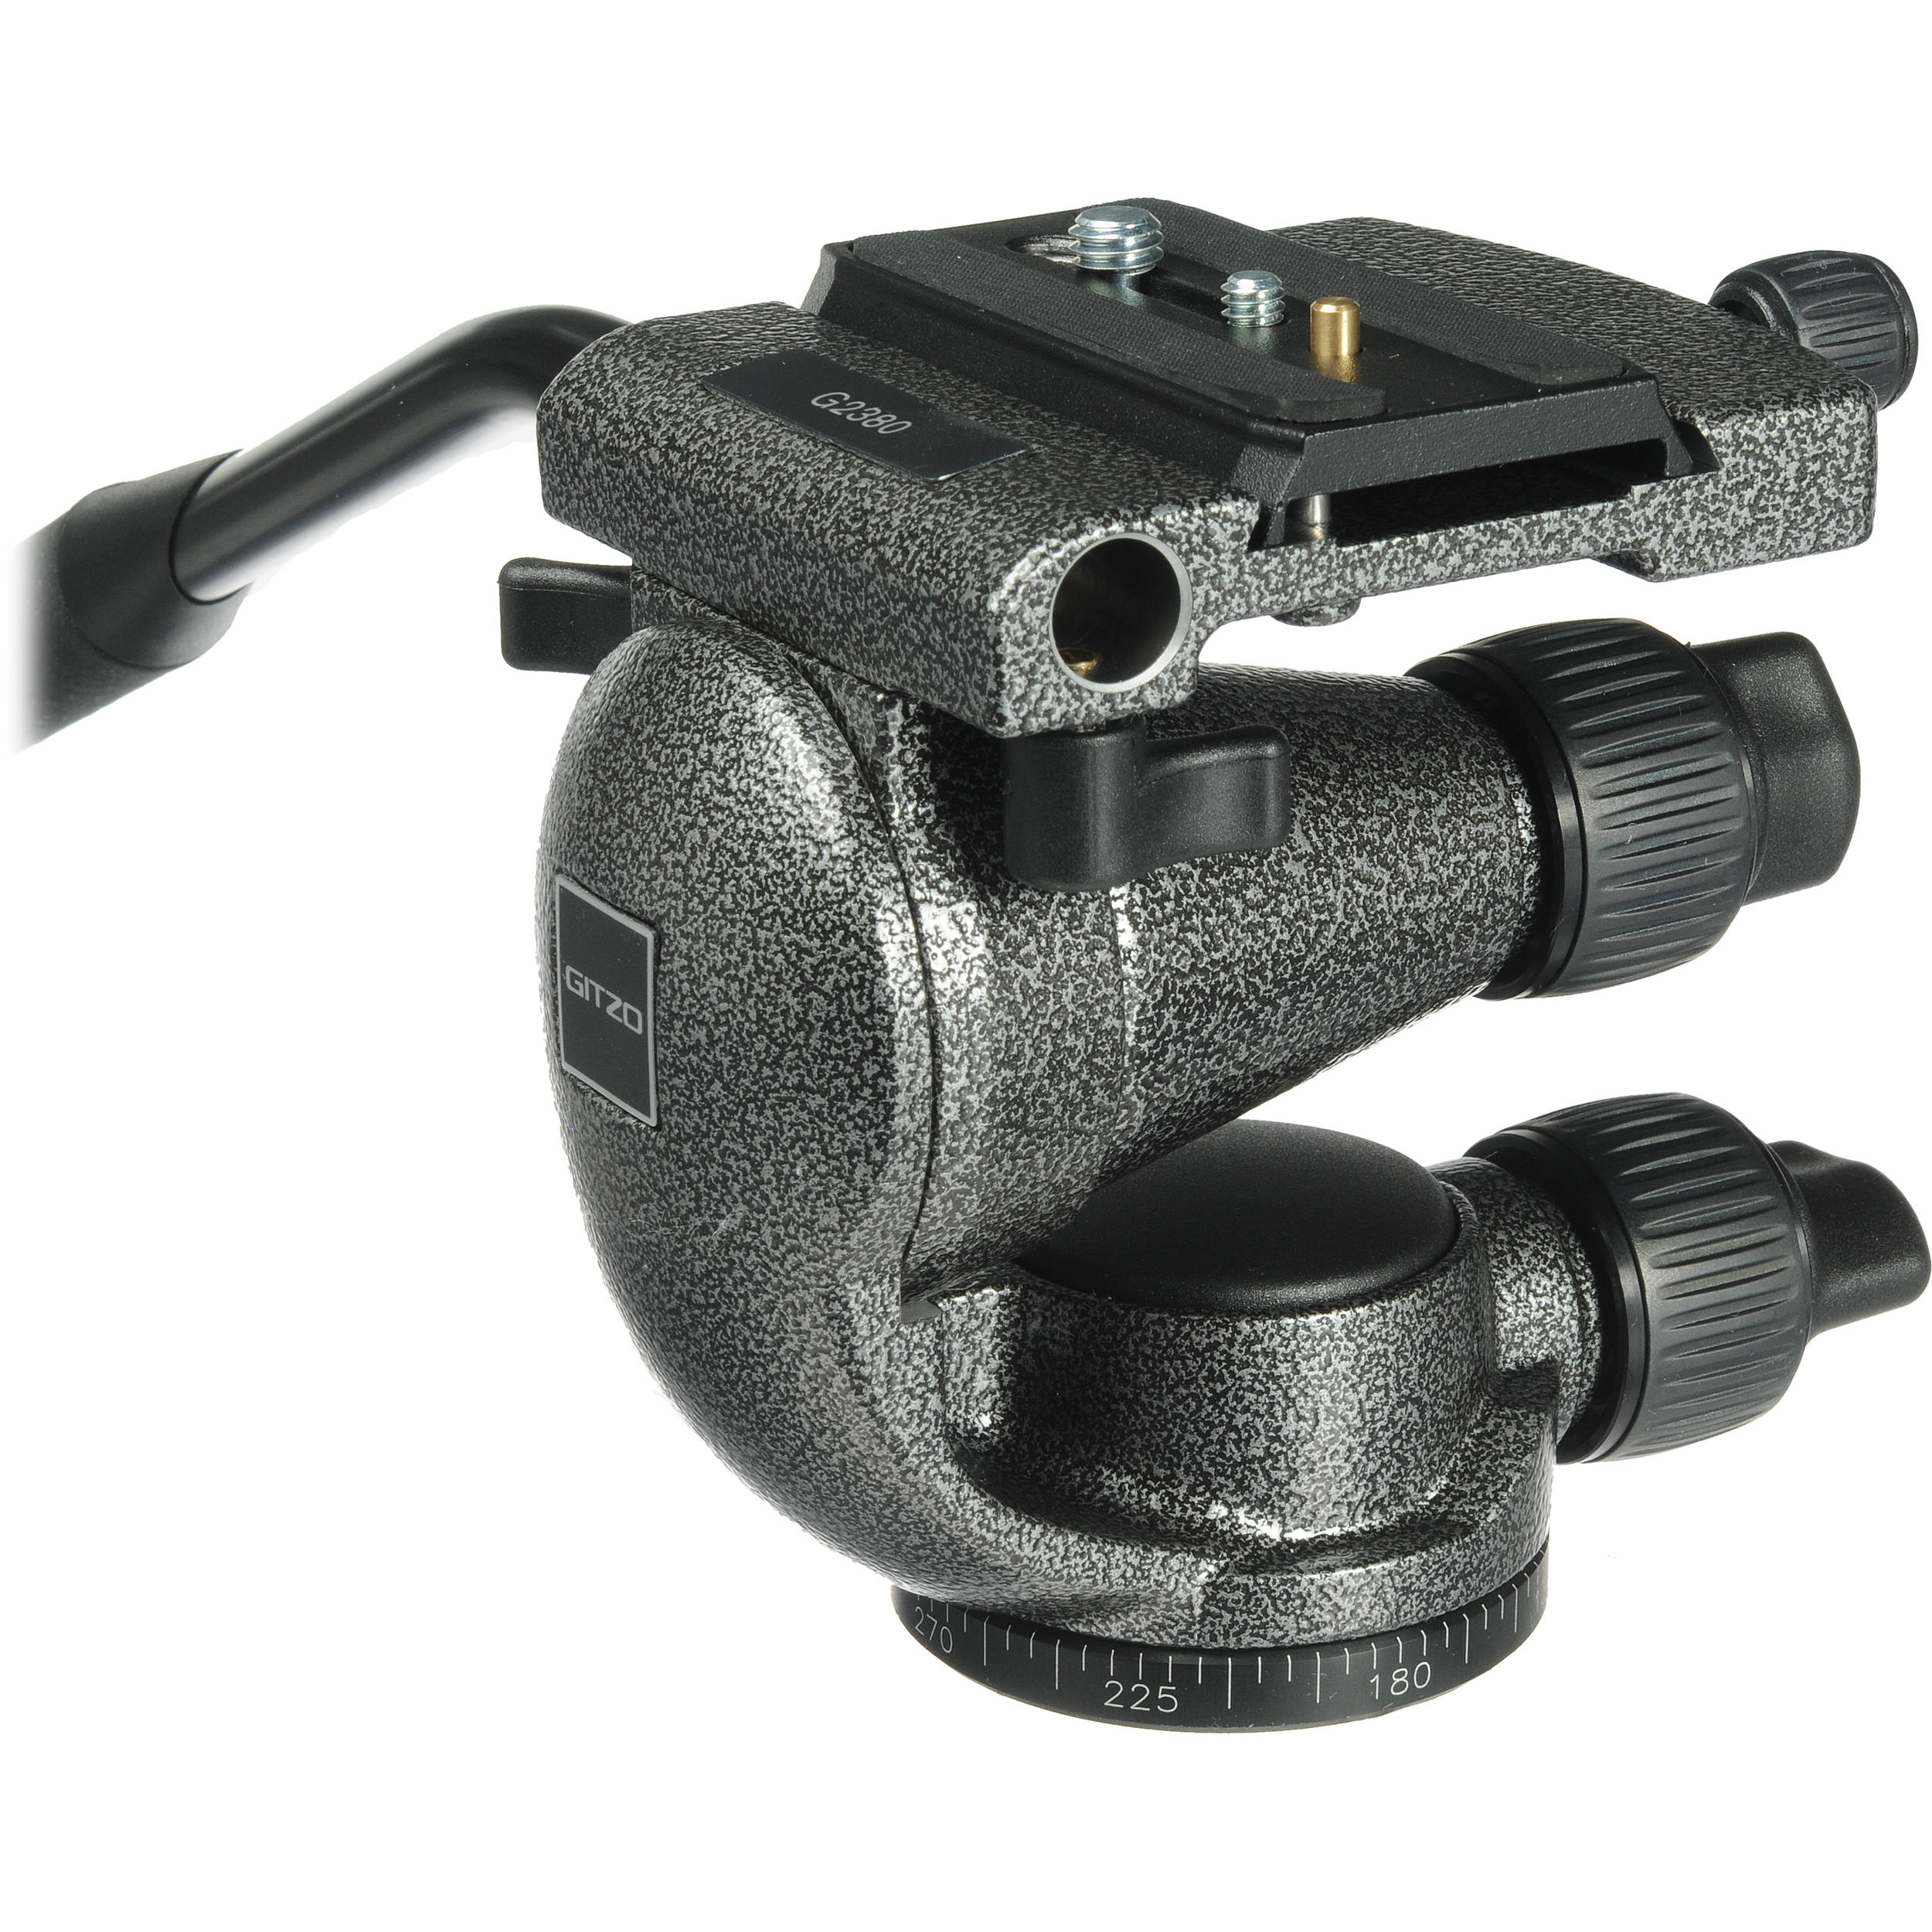 Gitzo G2380 2 Series Pro Video Fluid Head with Quick Release Plate